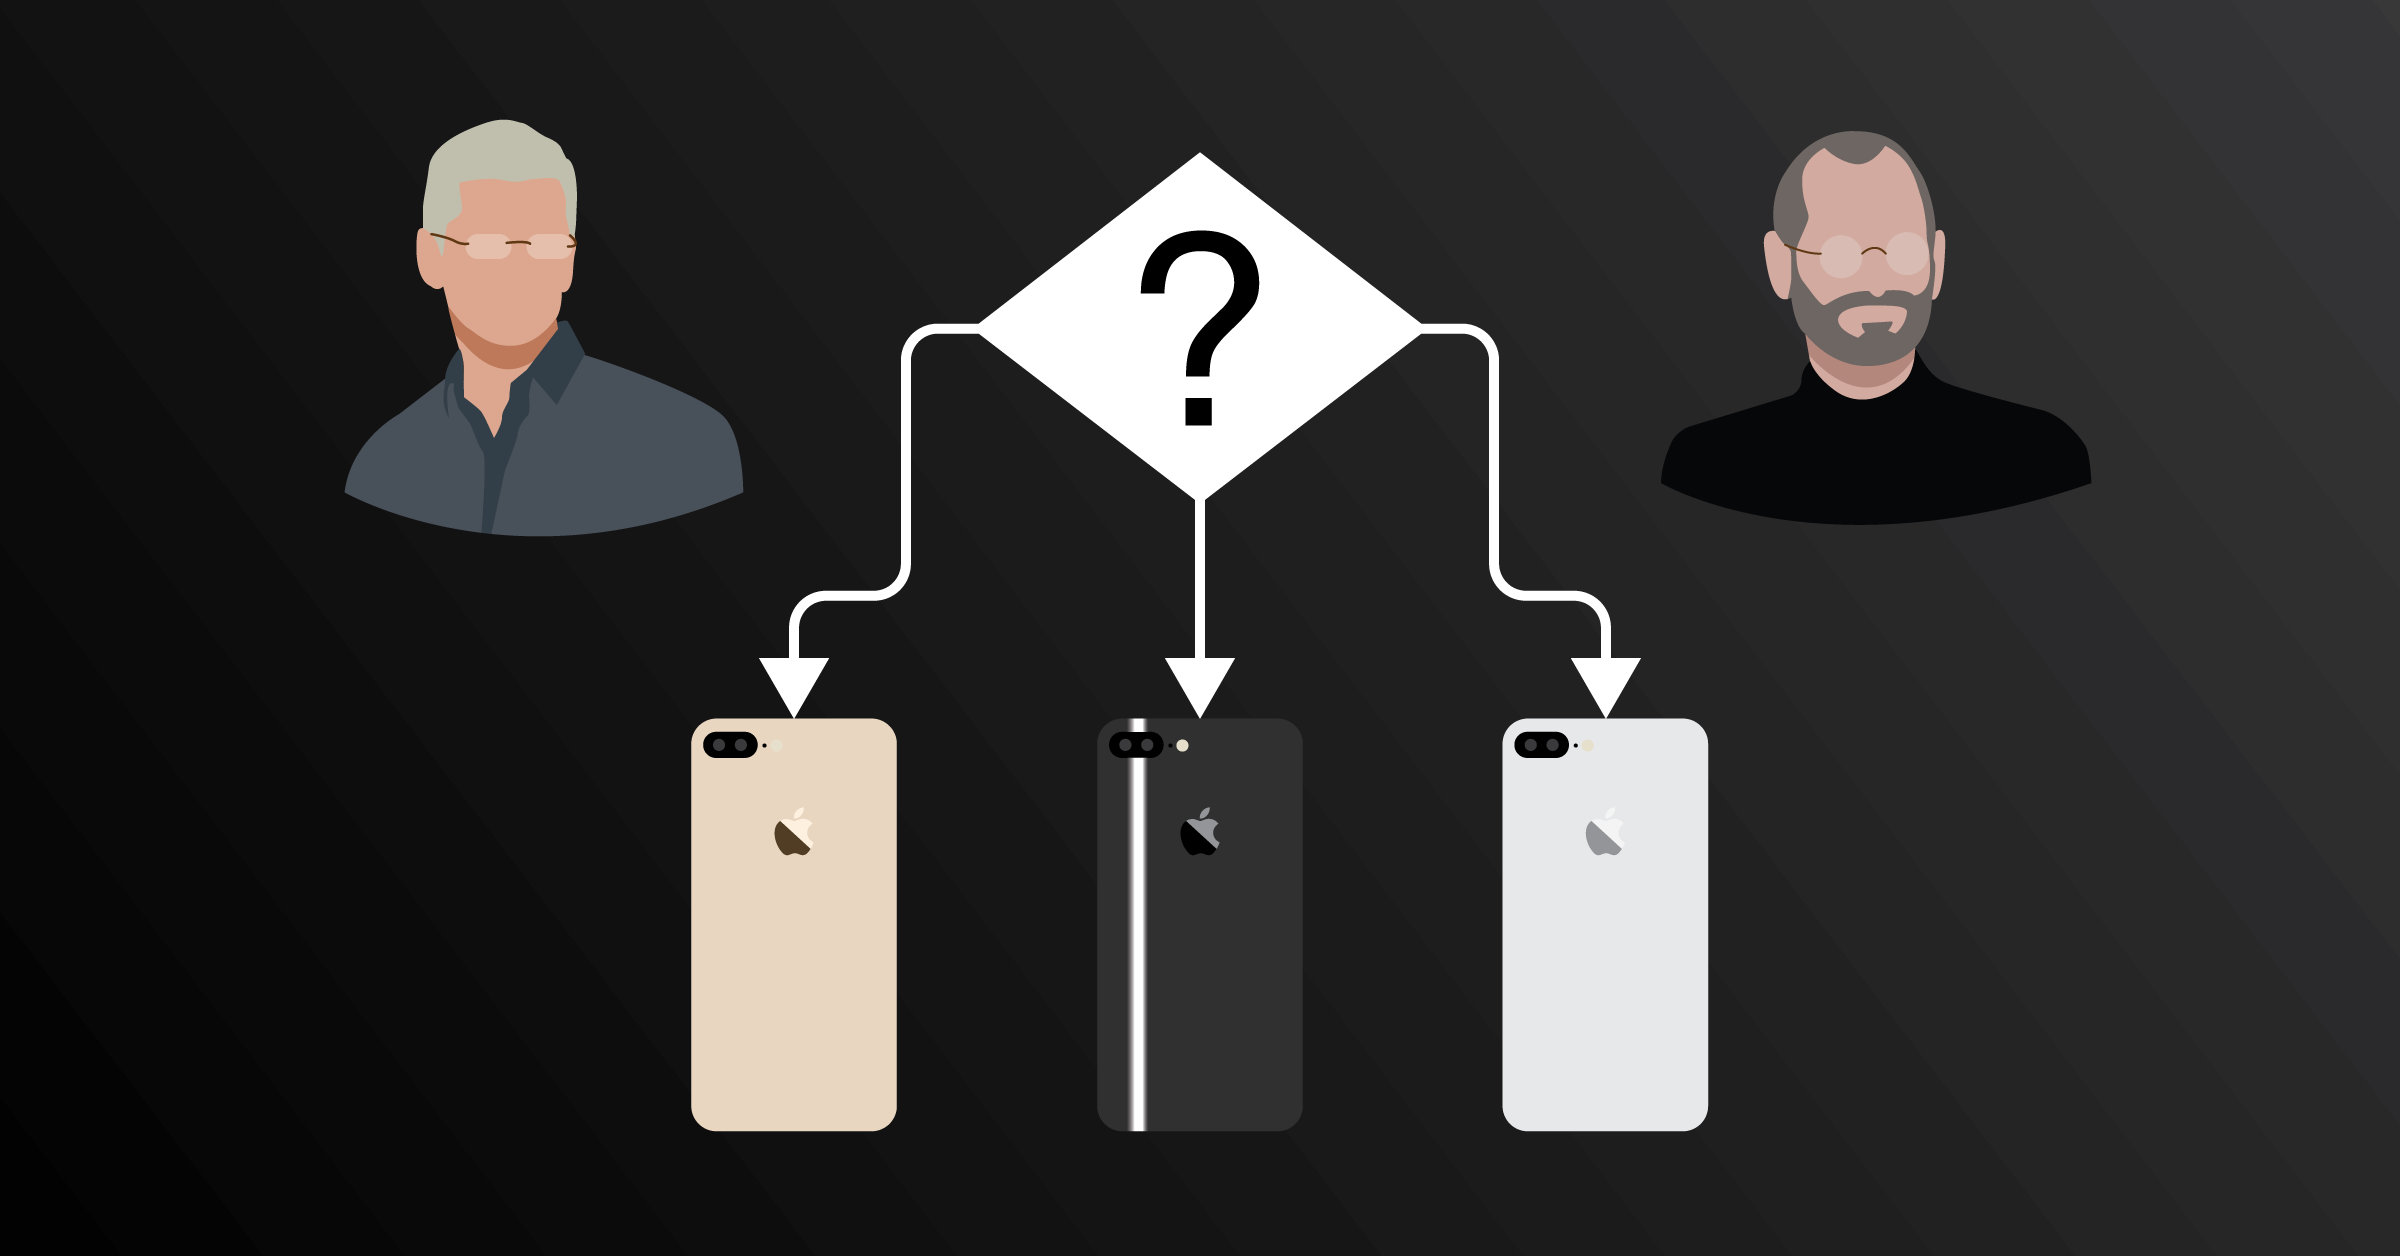 So, should you buy the iPhone 7?